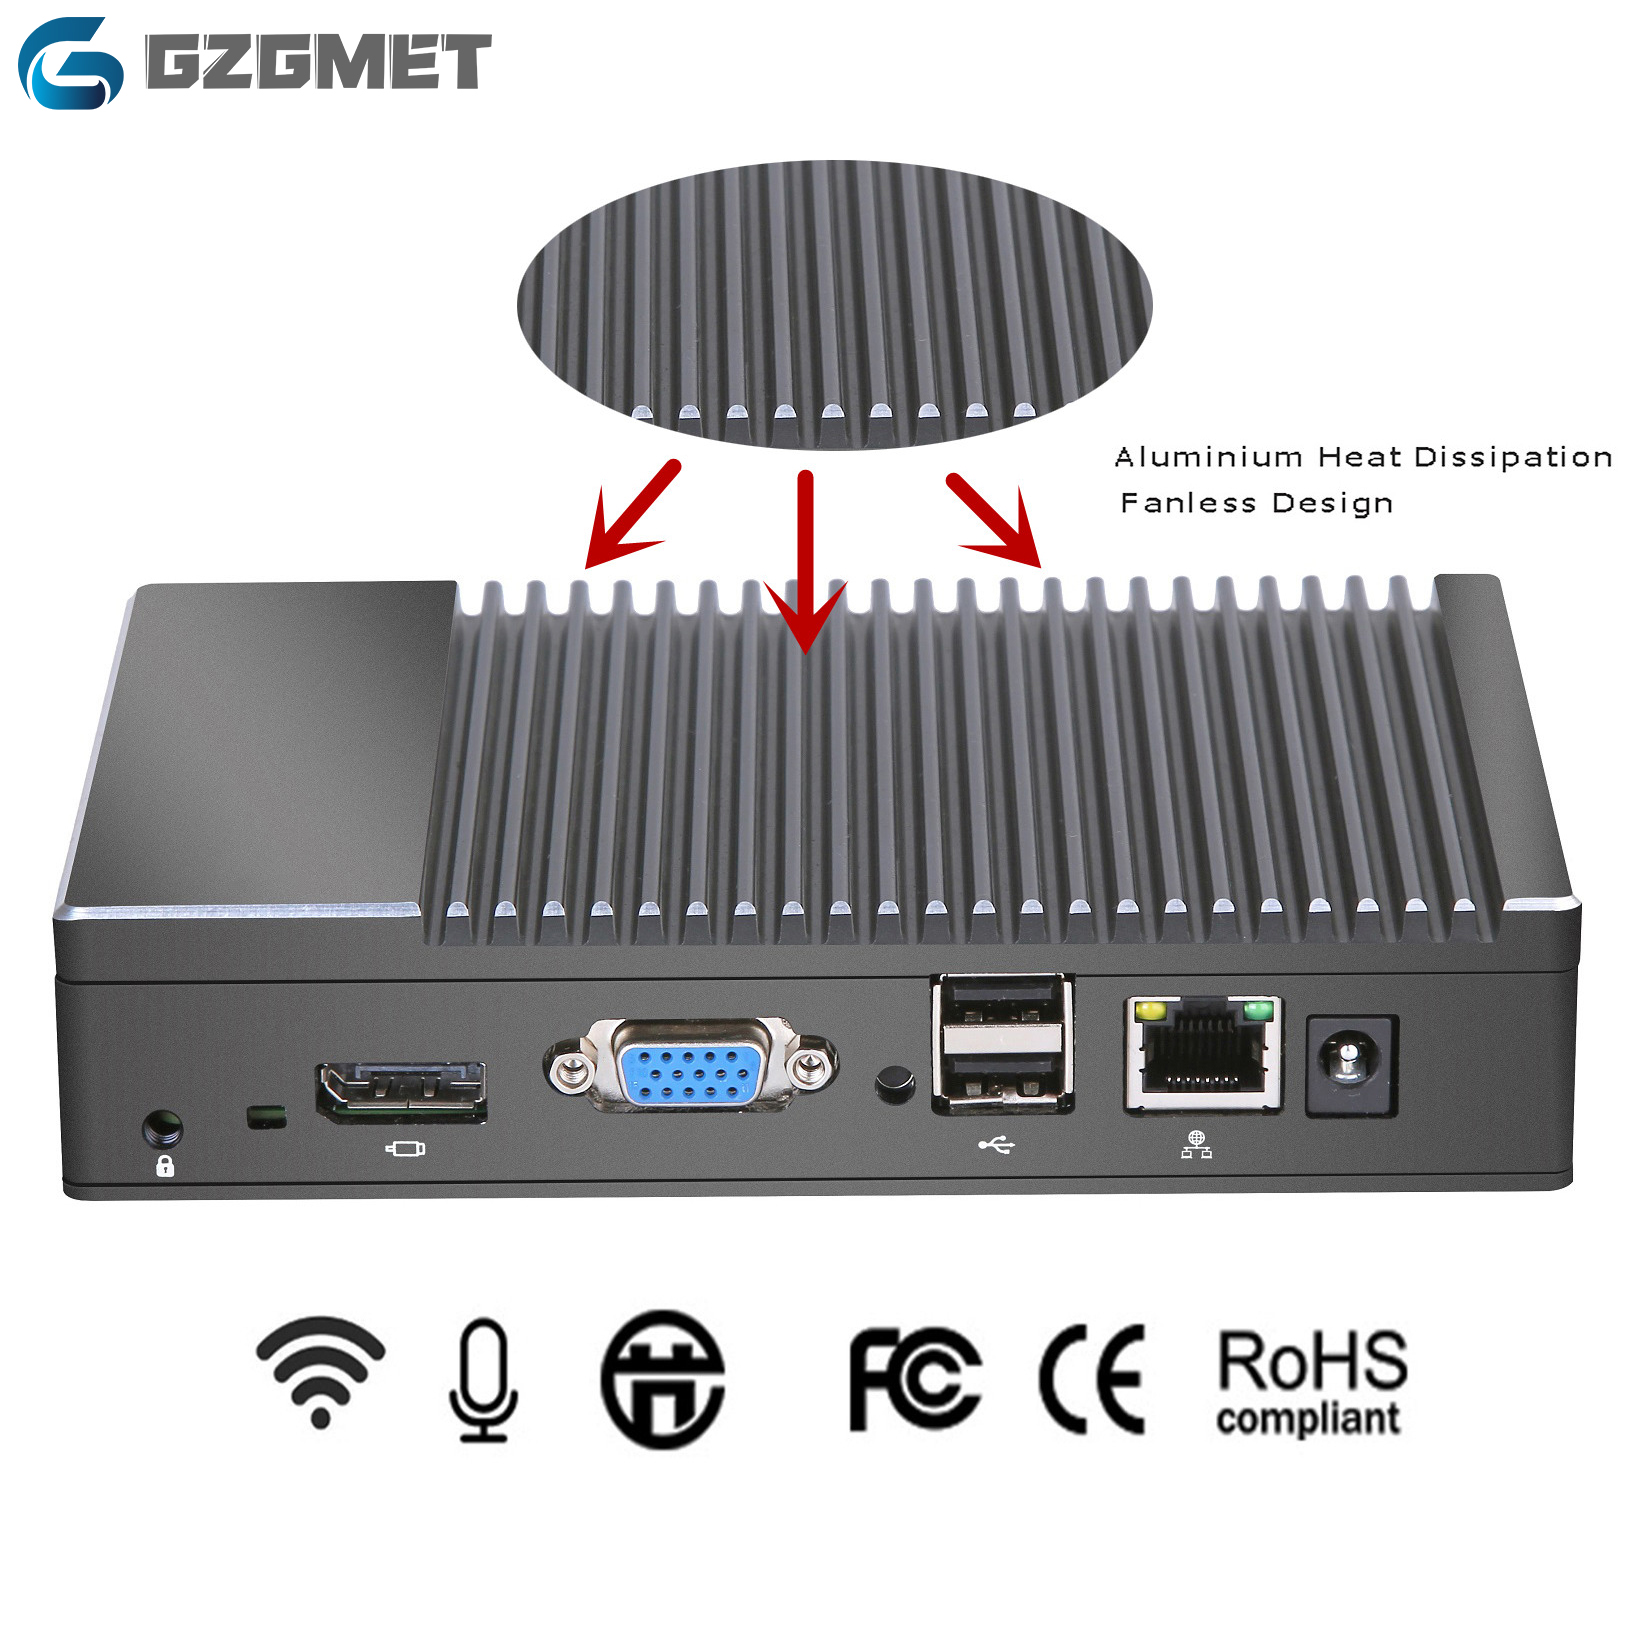 2019 Neue Metall Fall Mini Pc Windows 10 AMD Quad Core X86 Lüfterlose Kleine Größe SSD Wifi Bluetooth VGA HDMI computer